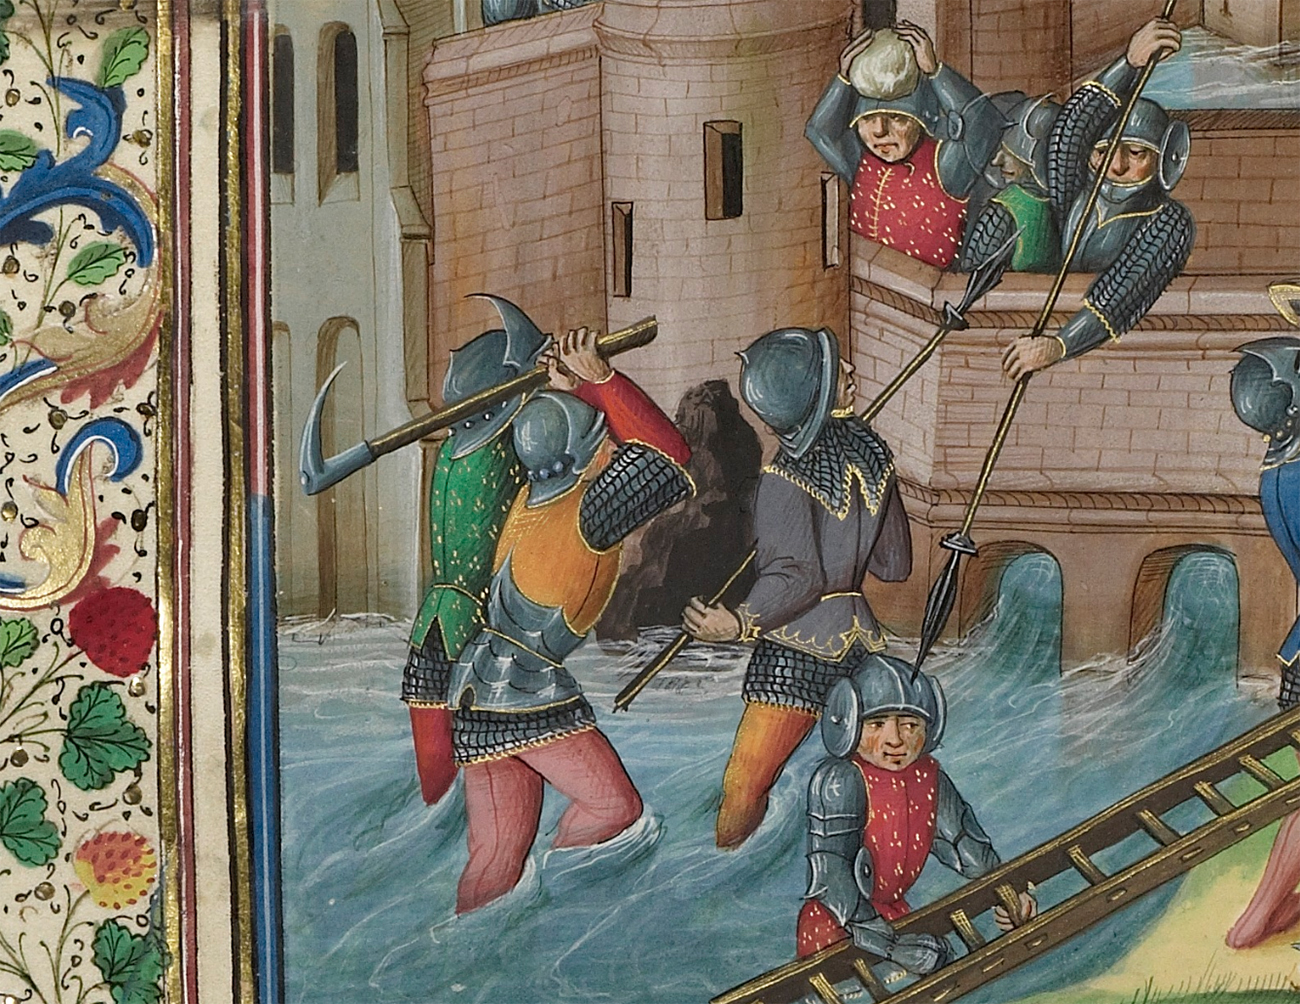 John of Gaunt Sailing for Brest and the Battle between the English and the Bretons, about 1480-83, Master of the Soane Josephus. Tempera colors and gold on parchment, 17 x 13 in. The J. Paul Getty Museum, Ms. Ludwig XIII 7, fol. 116v. Digital image courtesy of the Getty's Open Content Program